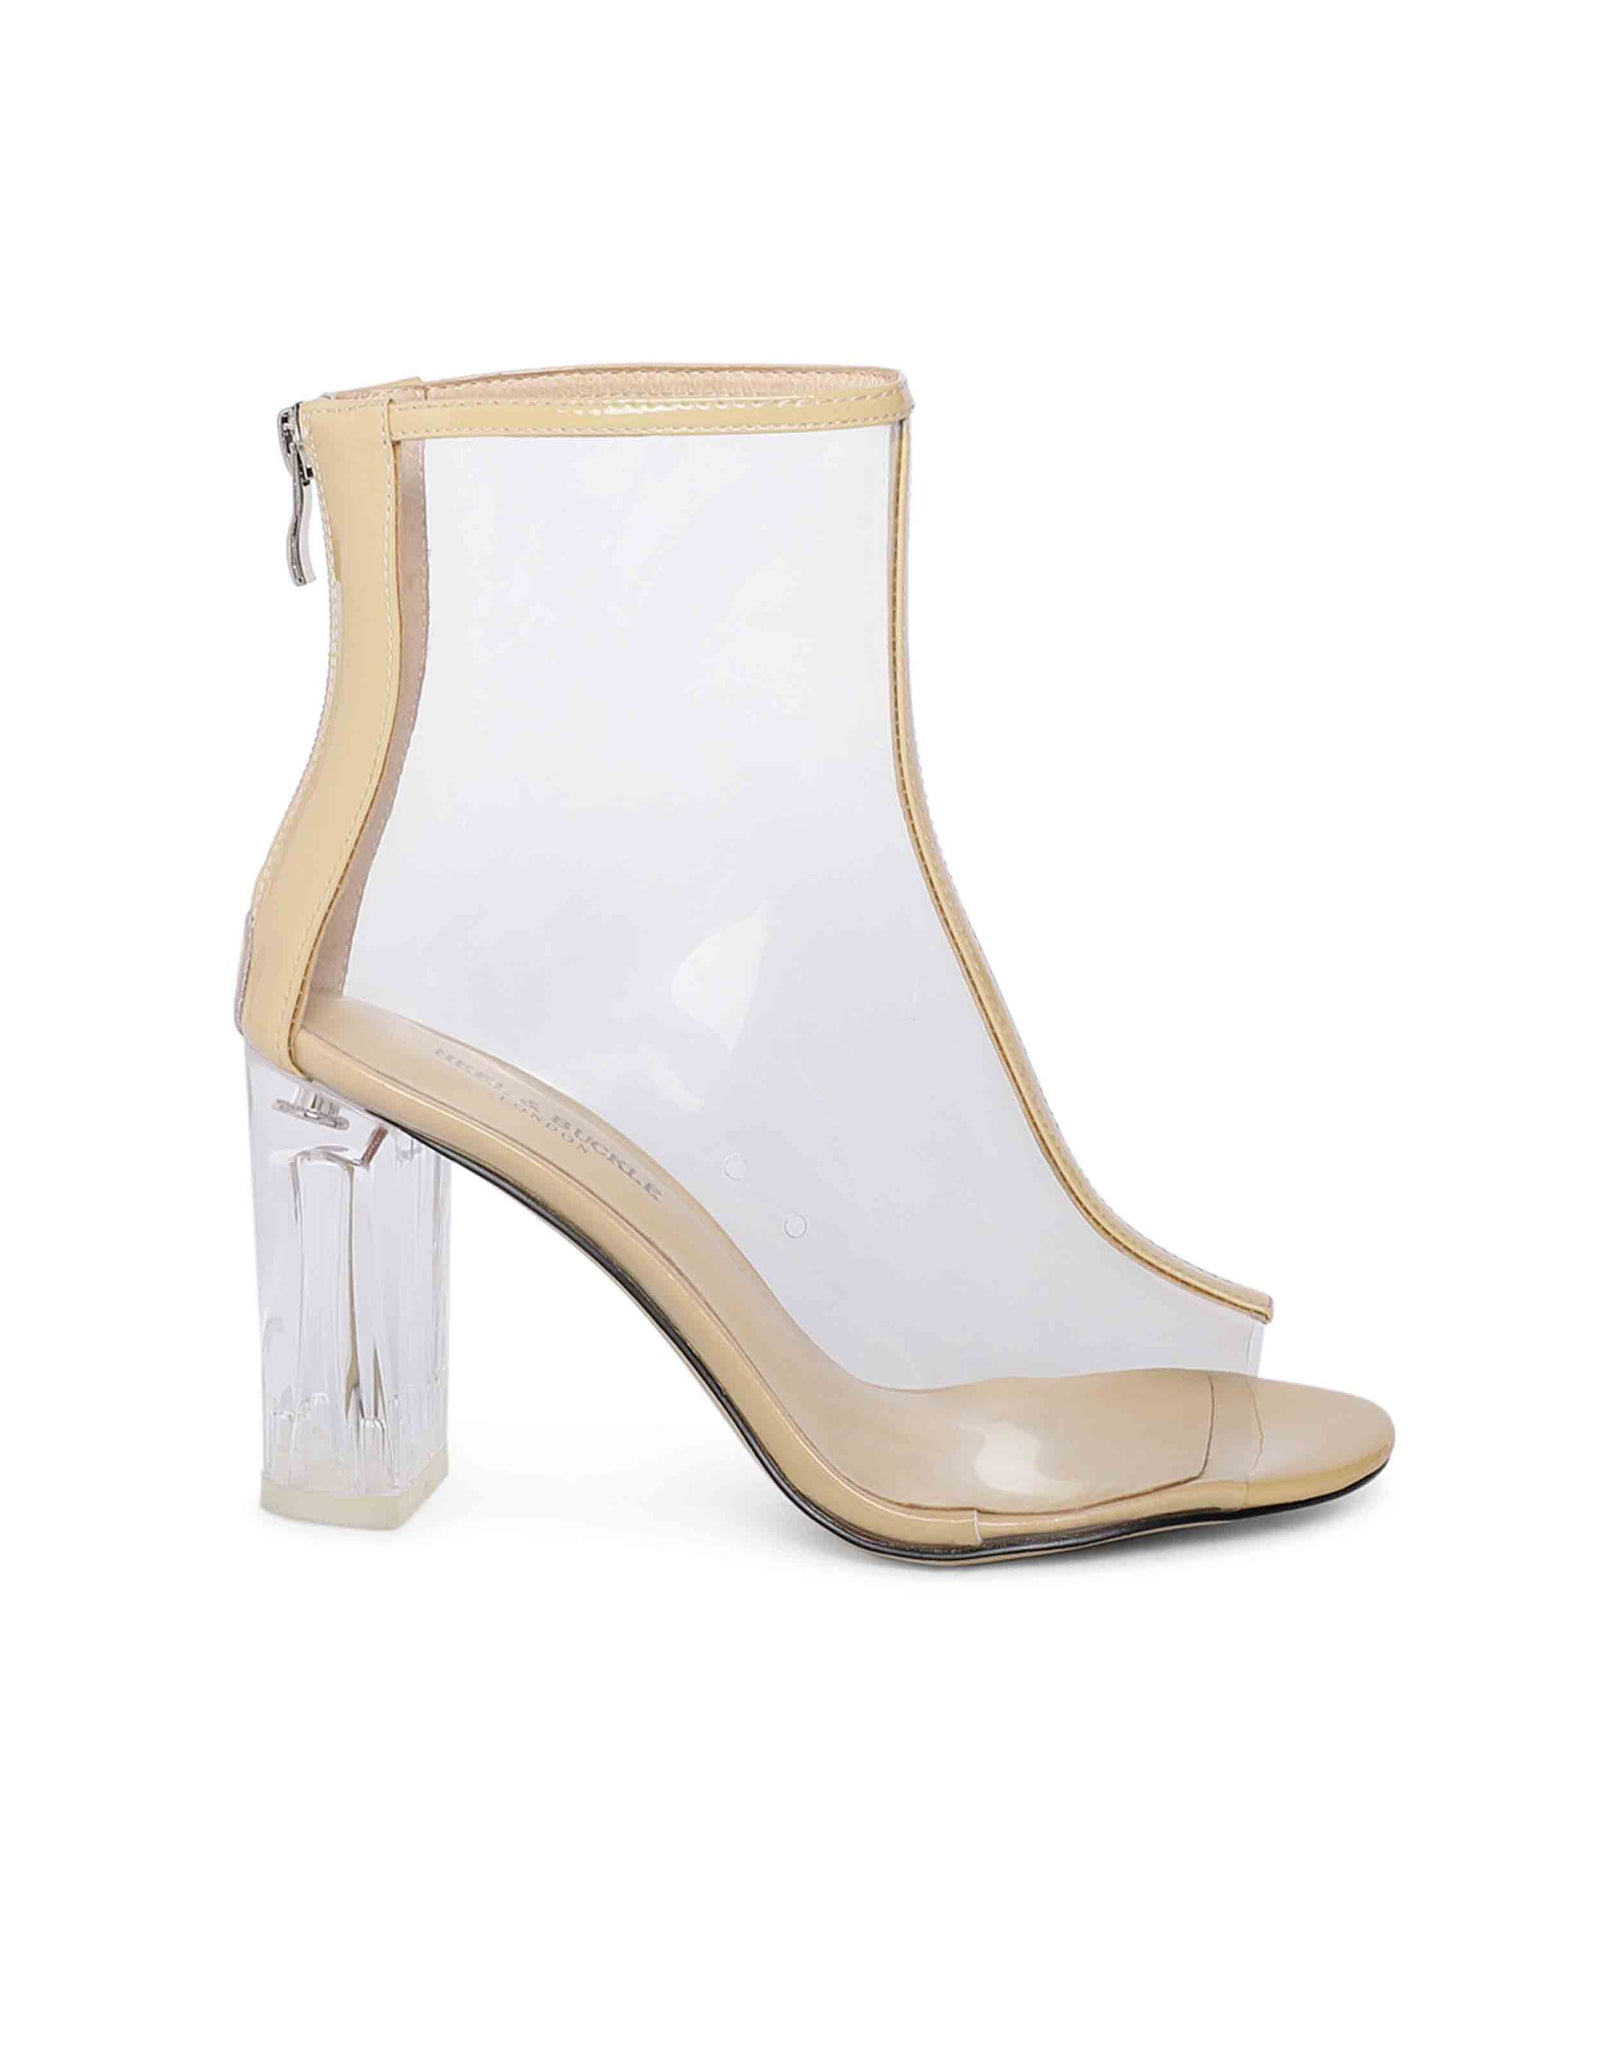 Beige Lucite Peep-toe Boots